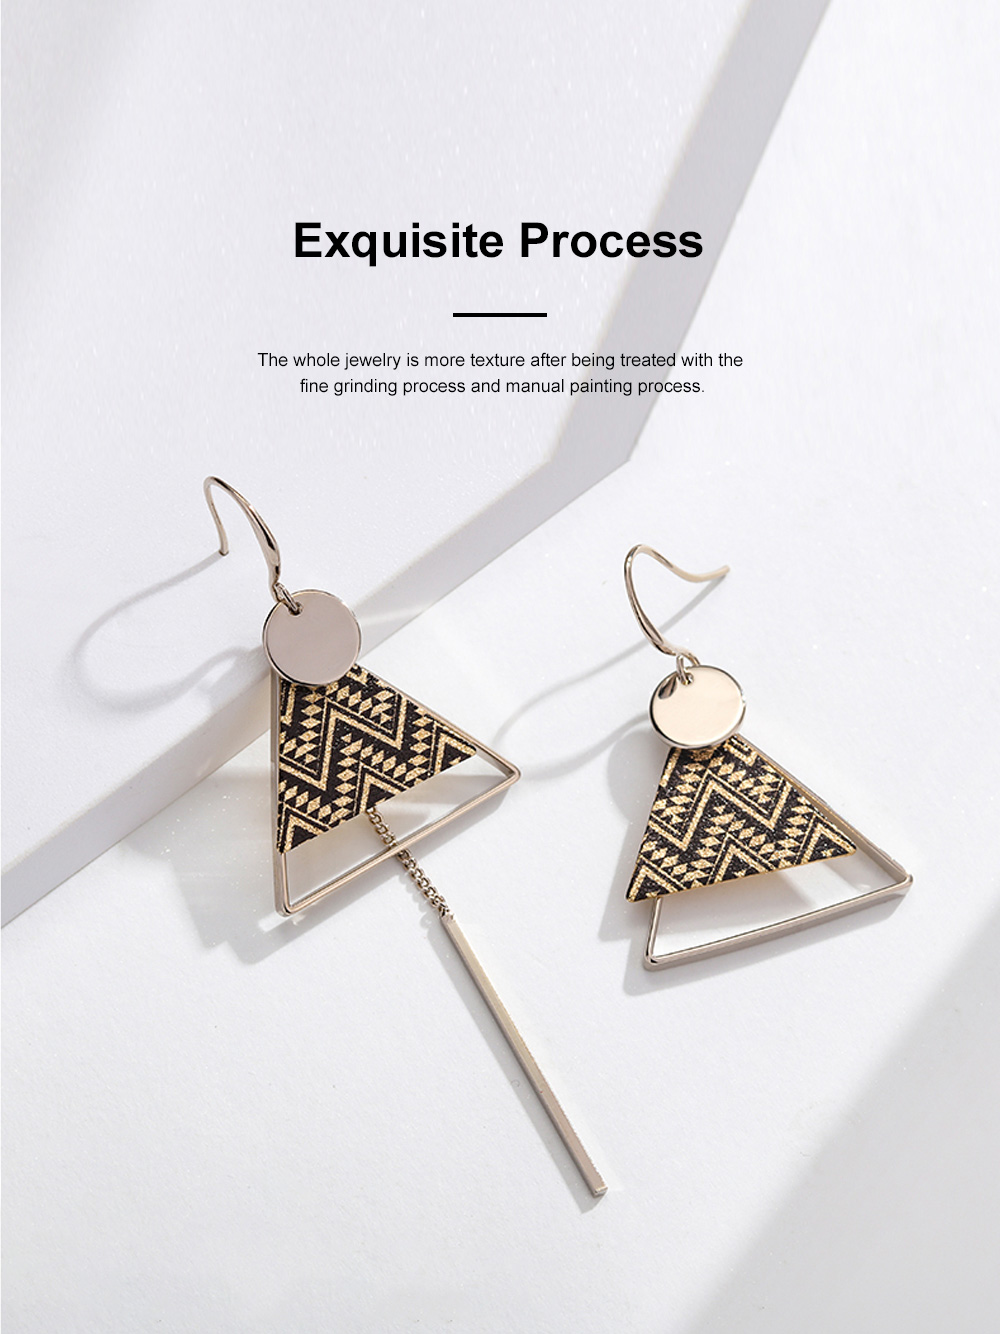 Elegant Holiday Earrings for Women Vocation Style Asymmetrical Earrings with Daisy Peacock Feather Pattern 4